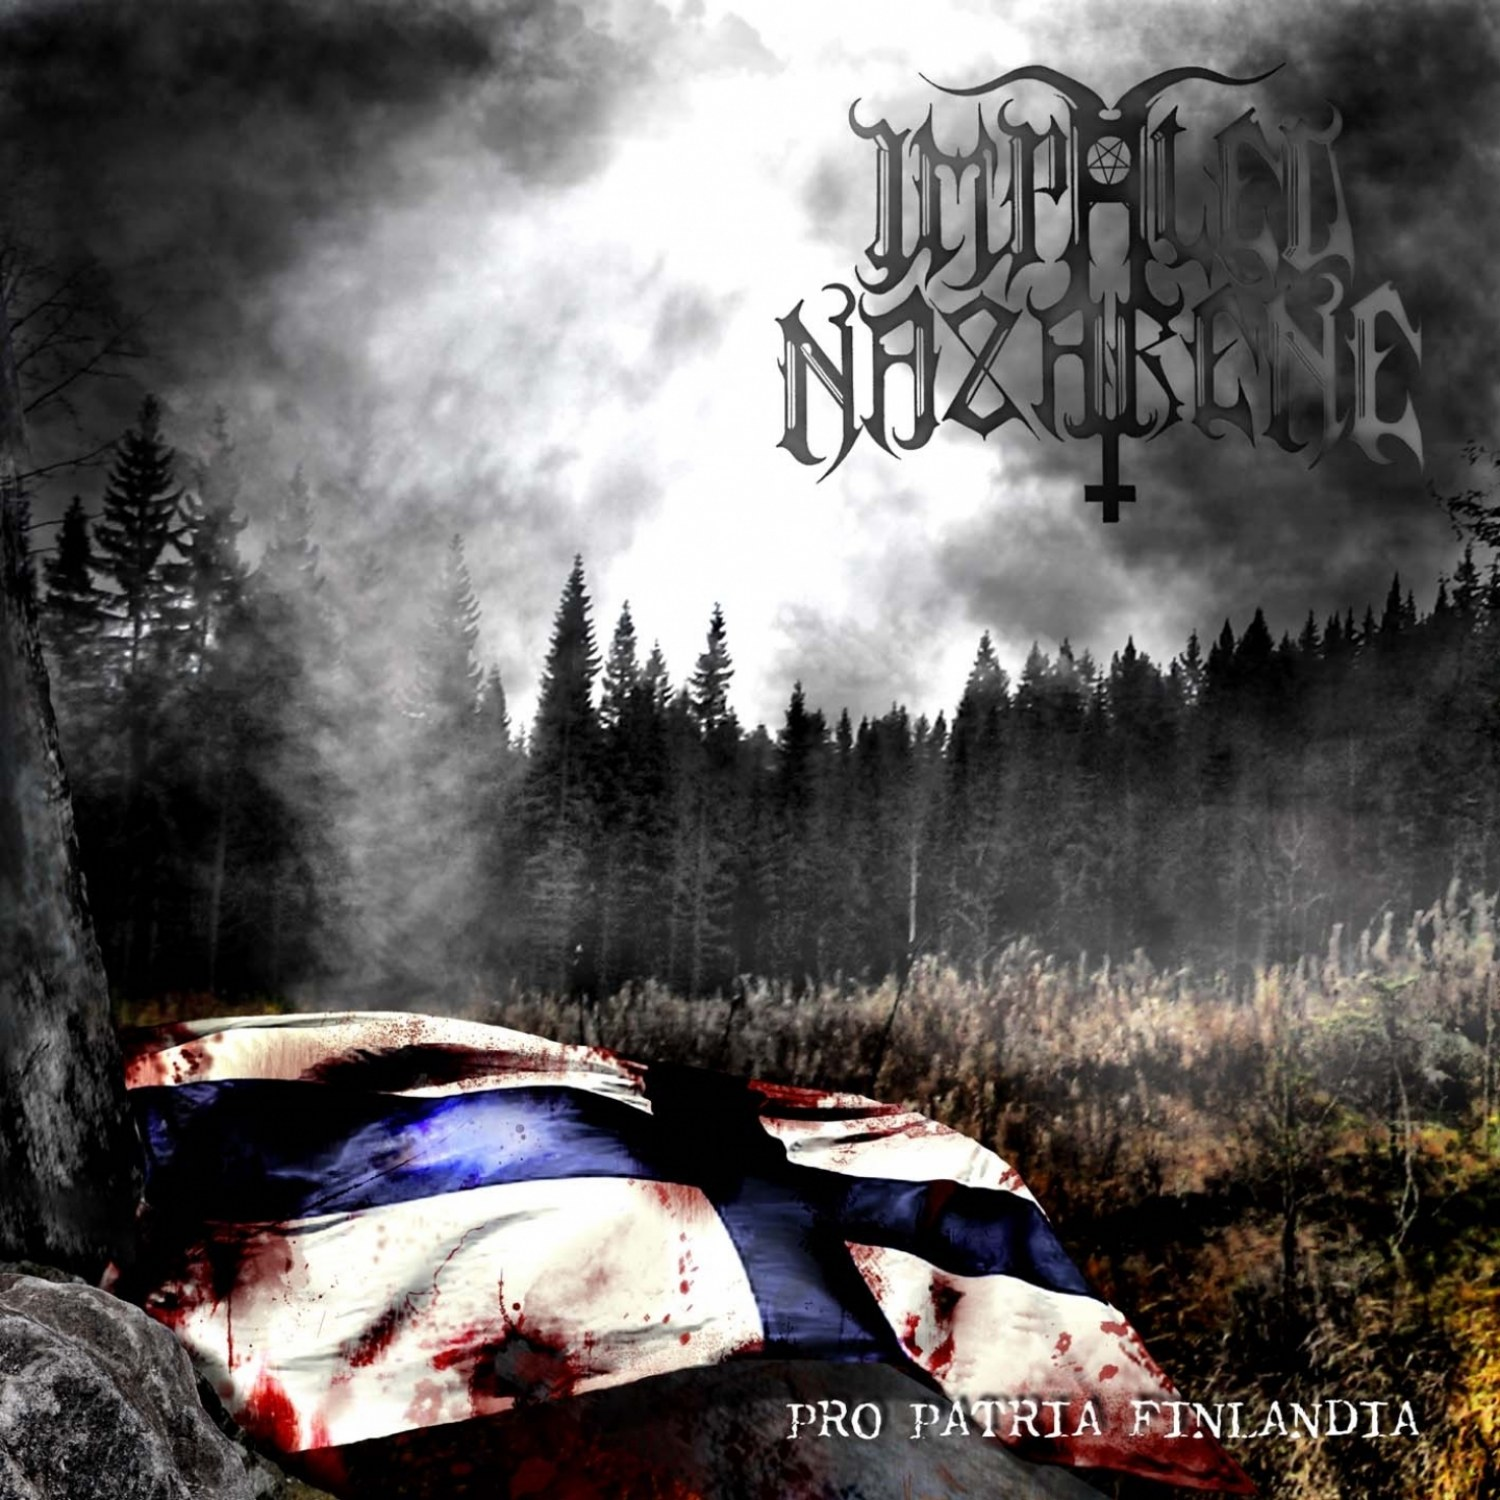 Review for Impaled Nazarene - Pro Patria Finlandia